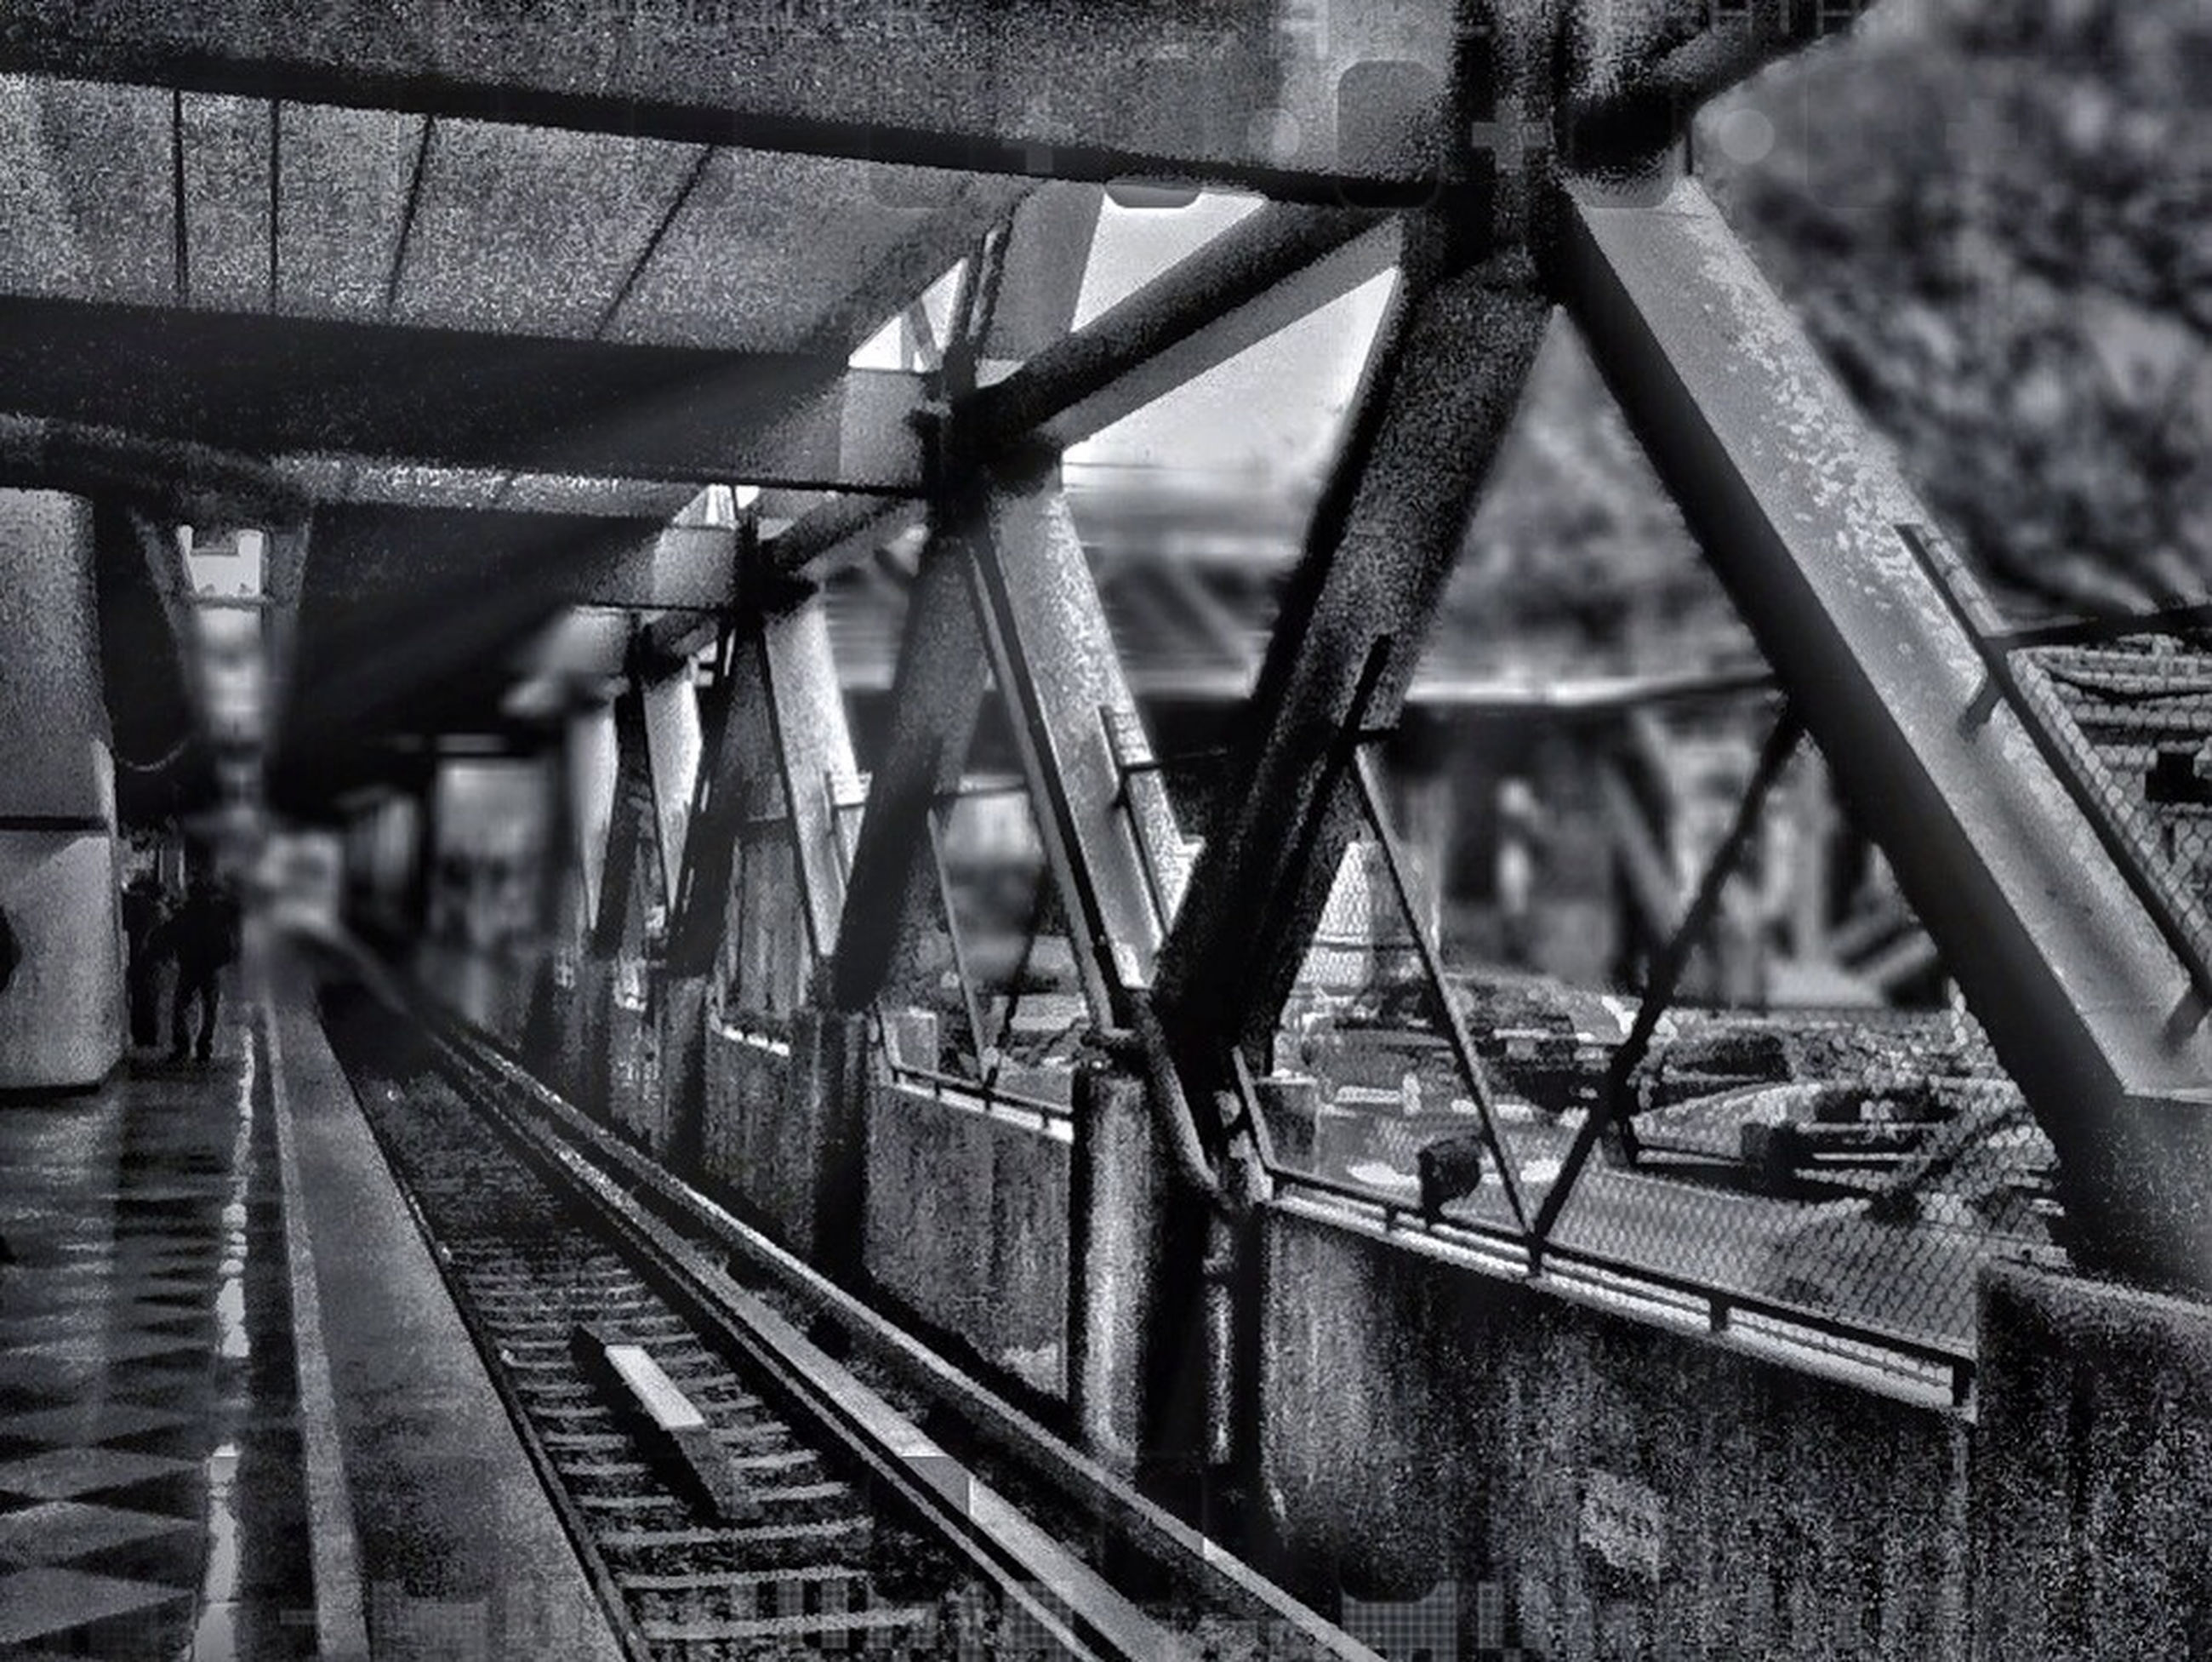 architecture, built structure, railroad track, the way forward, metal, transportation, railing, diminishing perspective, rail transportation, indoors, bridge - man made structure, connection, vanishing point, architectural column, ceiling, travel, metallic, day, incidental people, steps